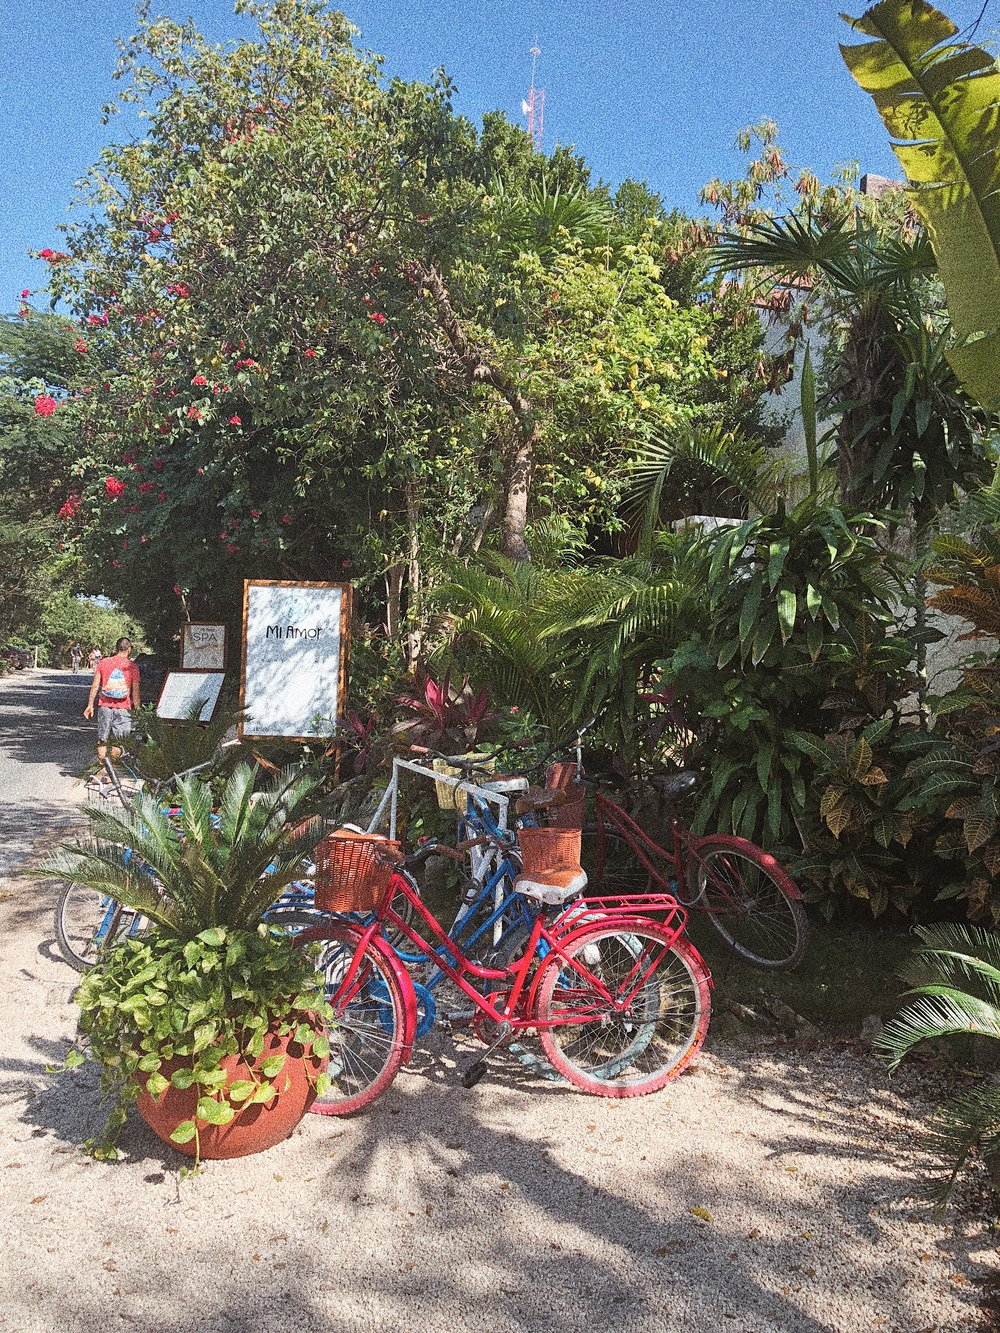 A bike stand outside the lush jungle setting of the Mi Amor hotel in Tulum, Mexico